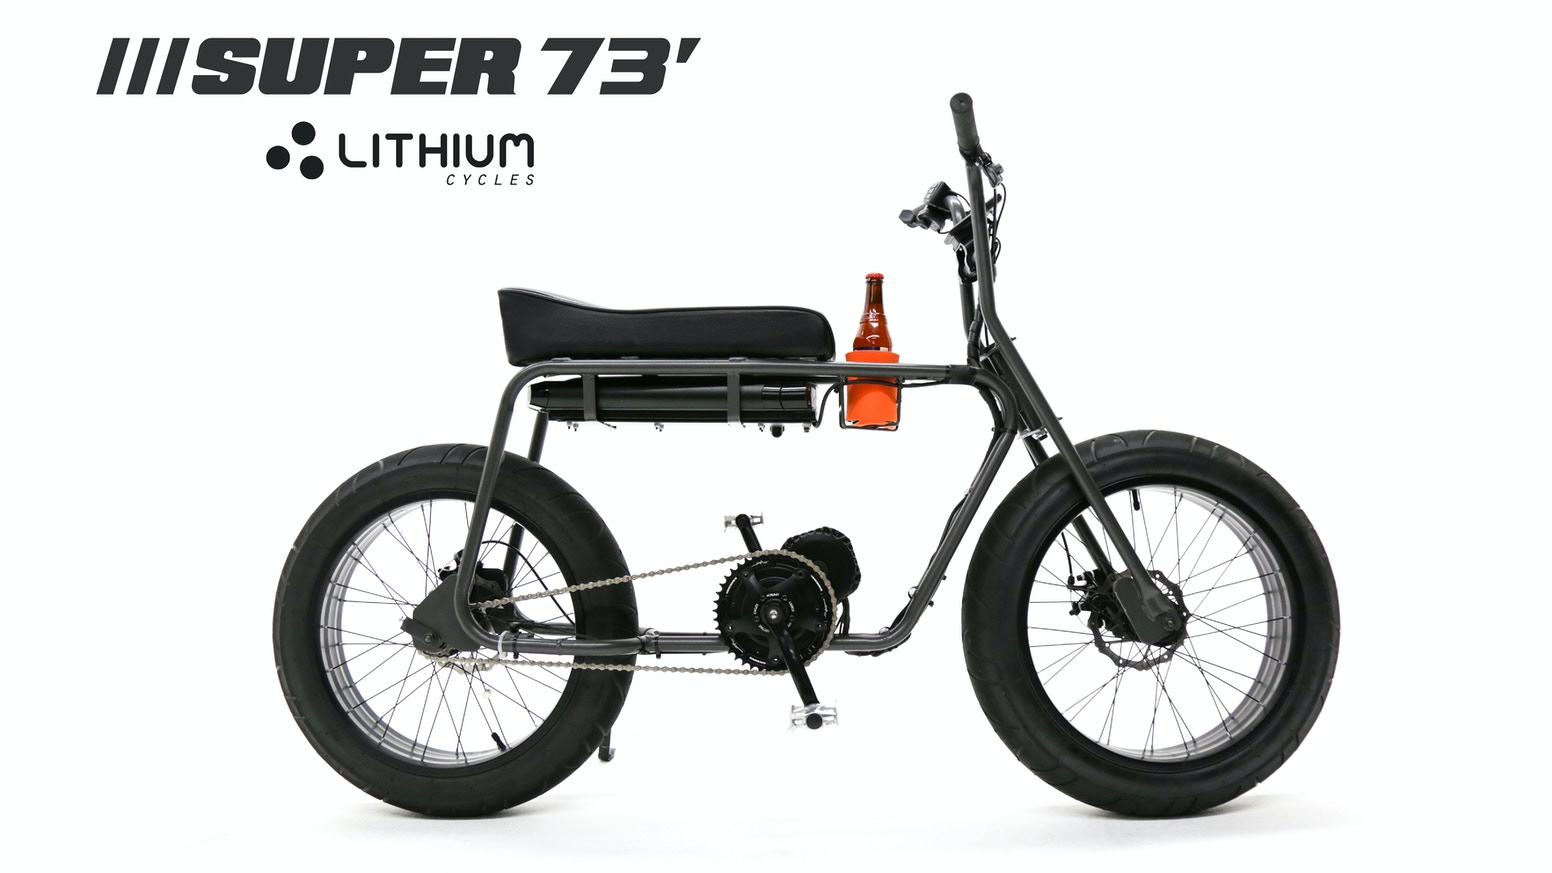 Super 73 Bike >> The Super 73 By Lithium Cycles Kickstarter